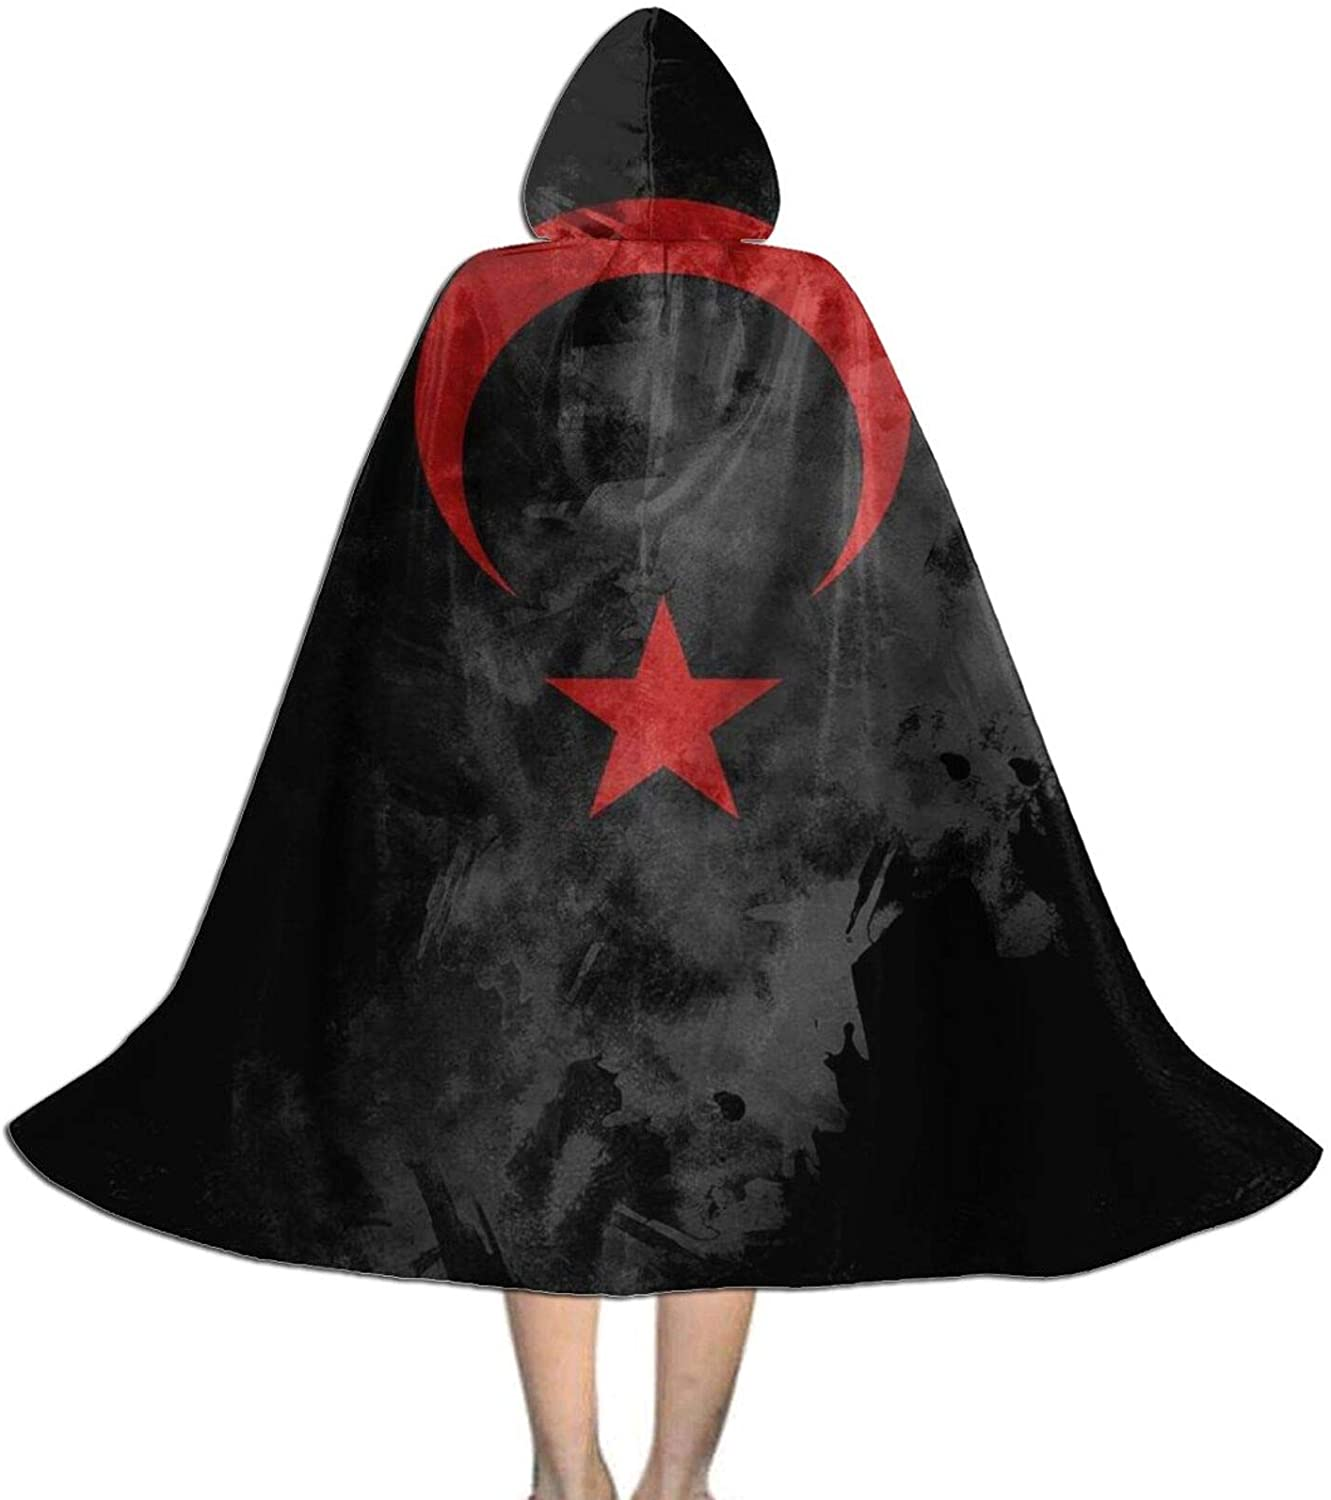 LNUO-1 Unisex Turkish Flag Kids Long Hooded Cloak Cape for Halloween Party Role Cosplay Costumes